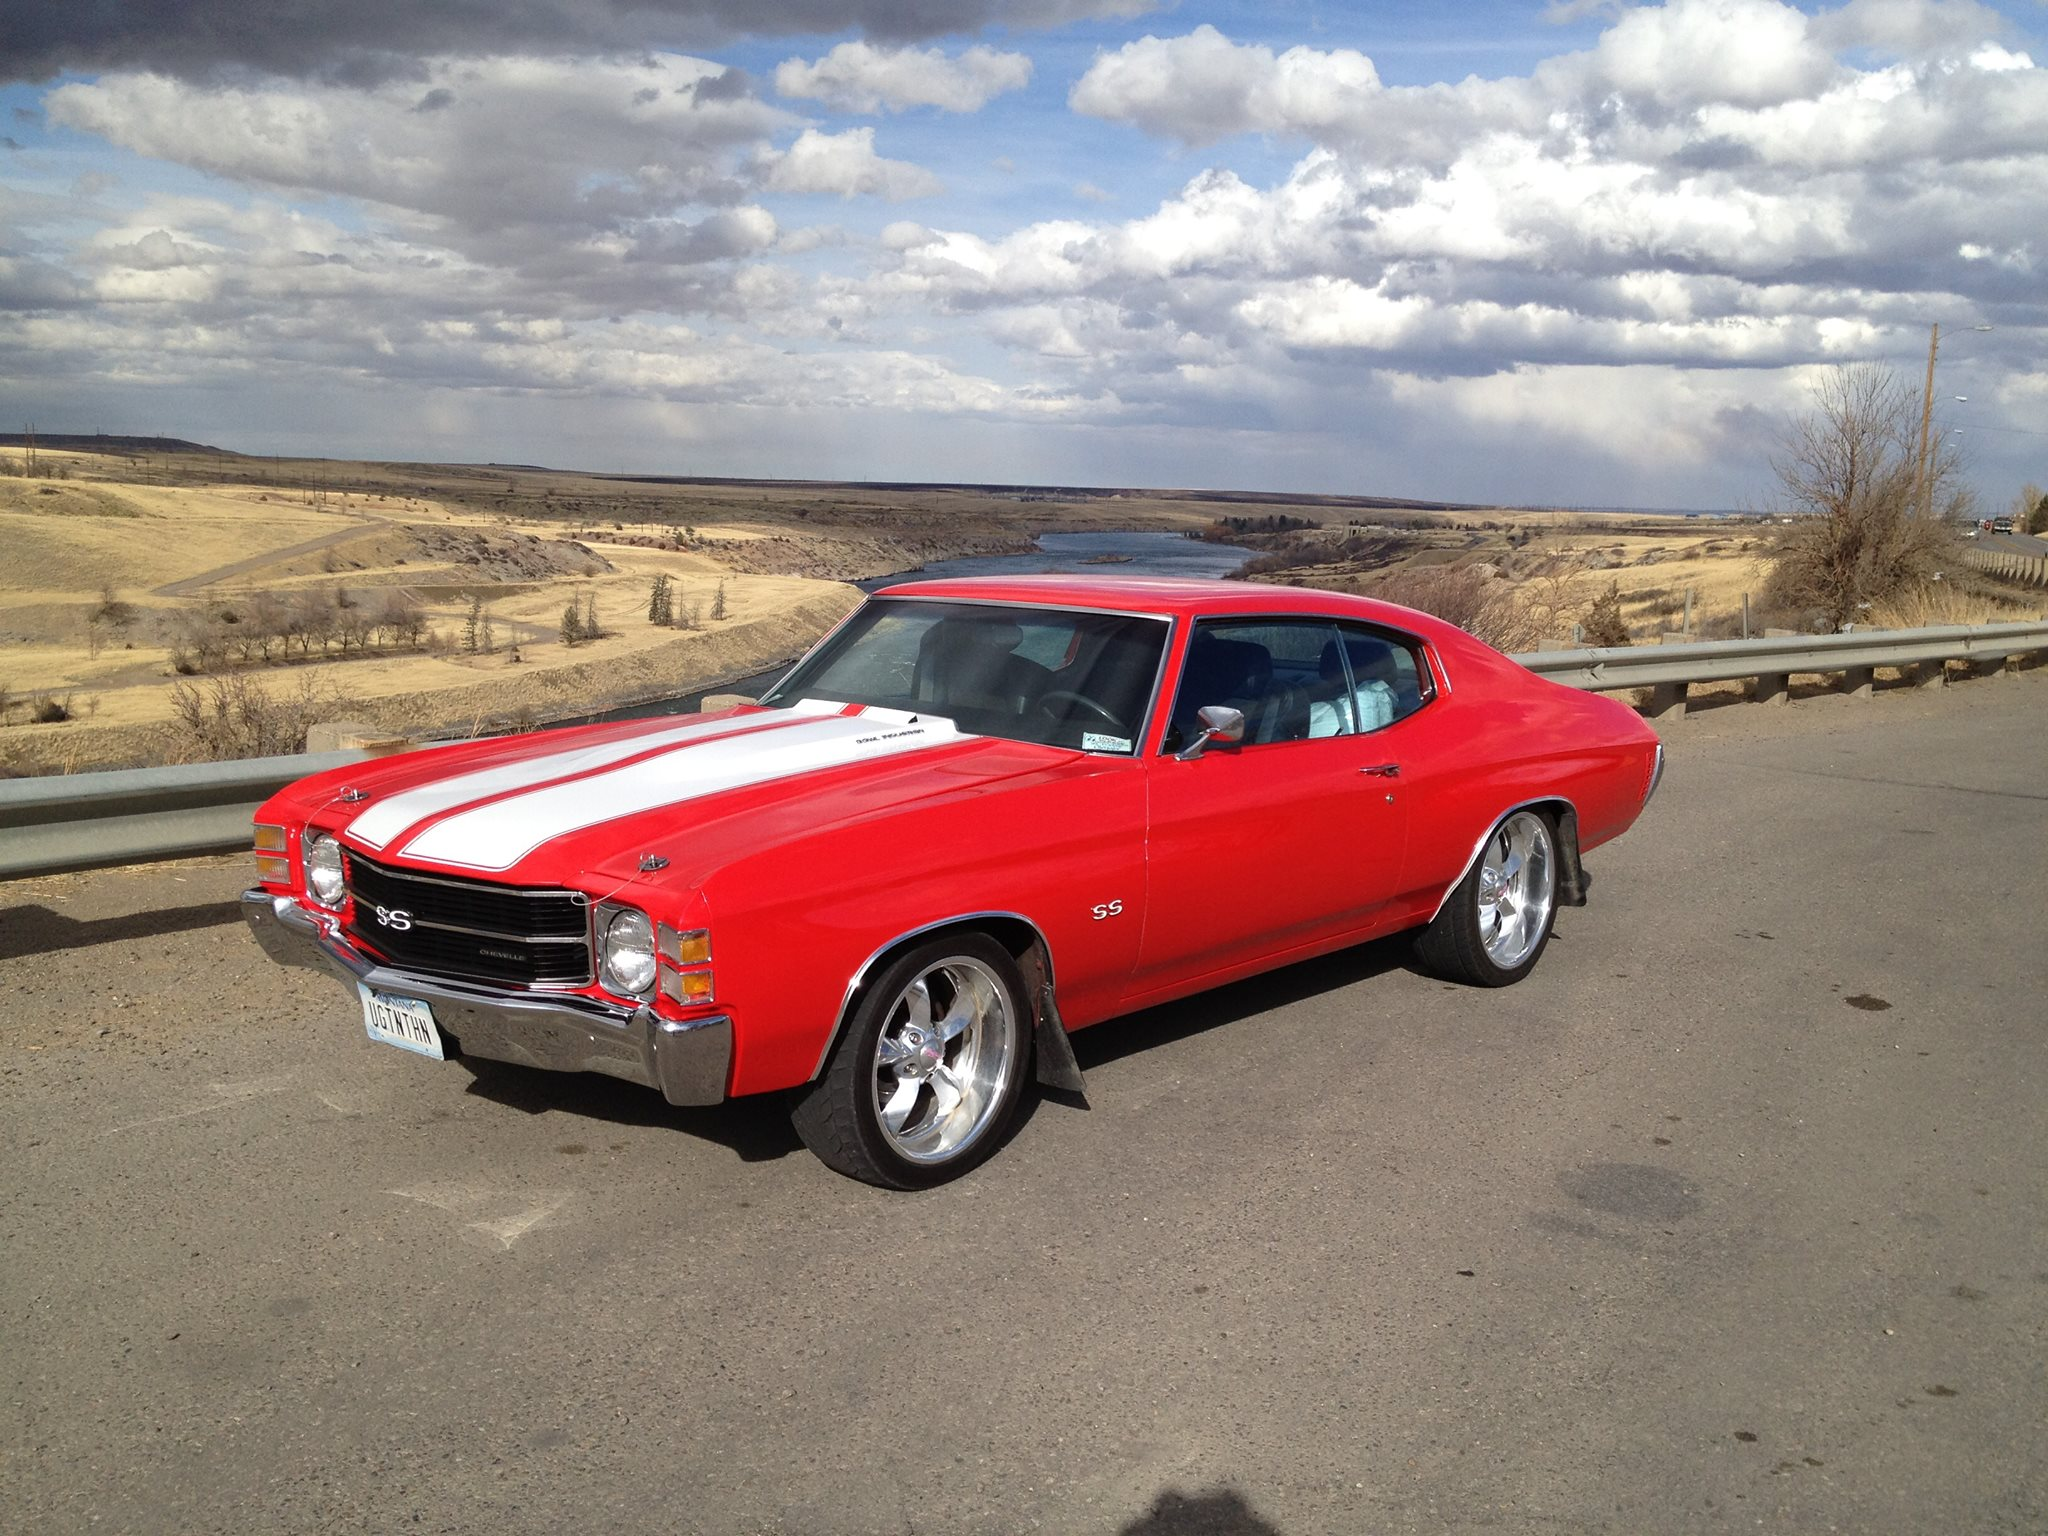 incentive package shaun carnahan 39 s 1971 chevy chevelle ss onallcylinders. Black Bedroom Furniture Sets. Home Design Ideas